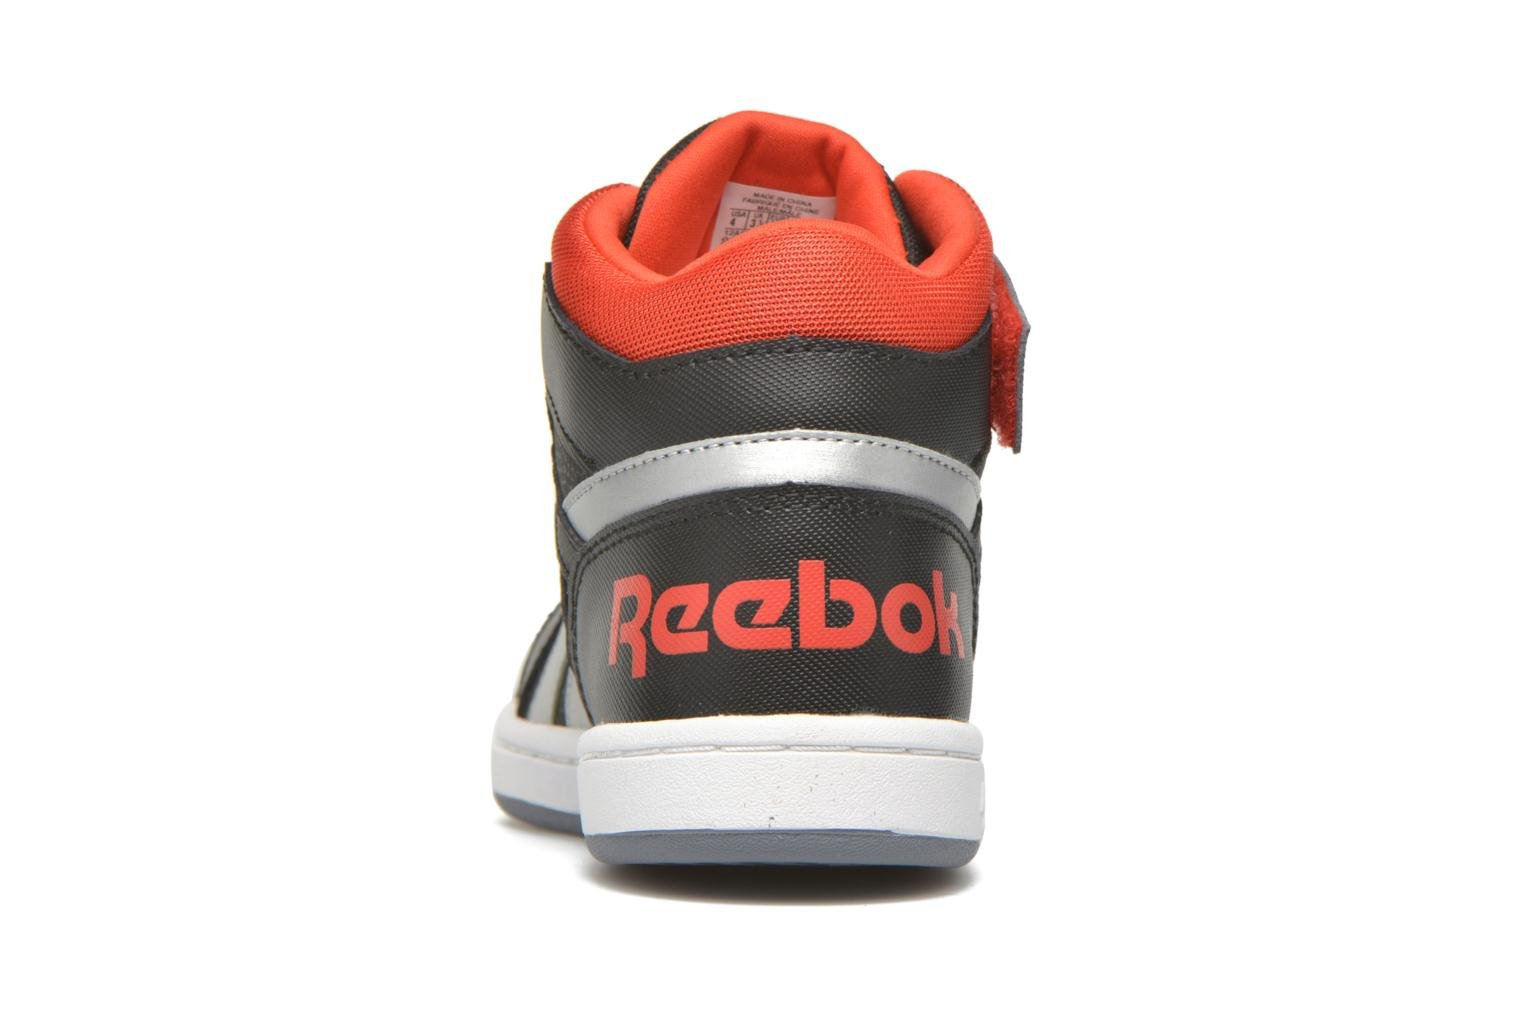 Reebok Mission 2.0 Black/Asteroid Dust/Riot Red/Silver Met/